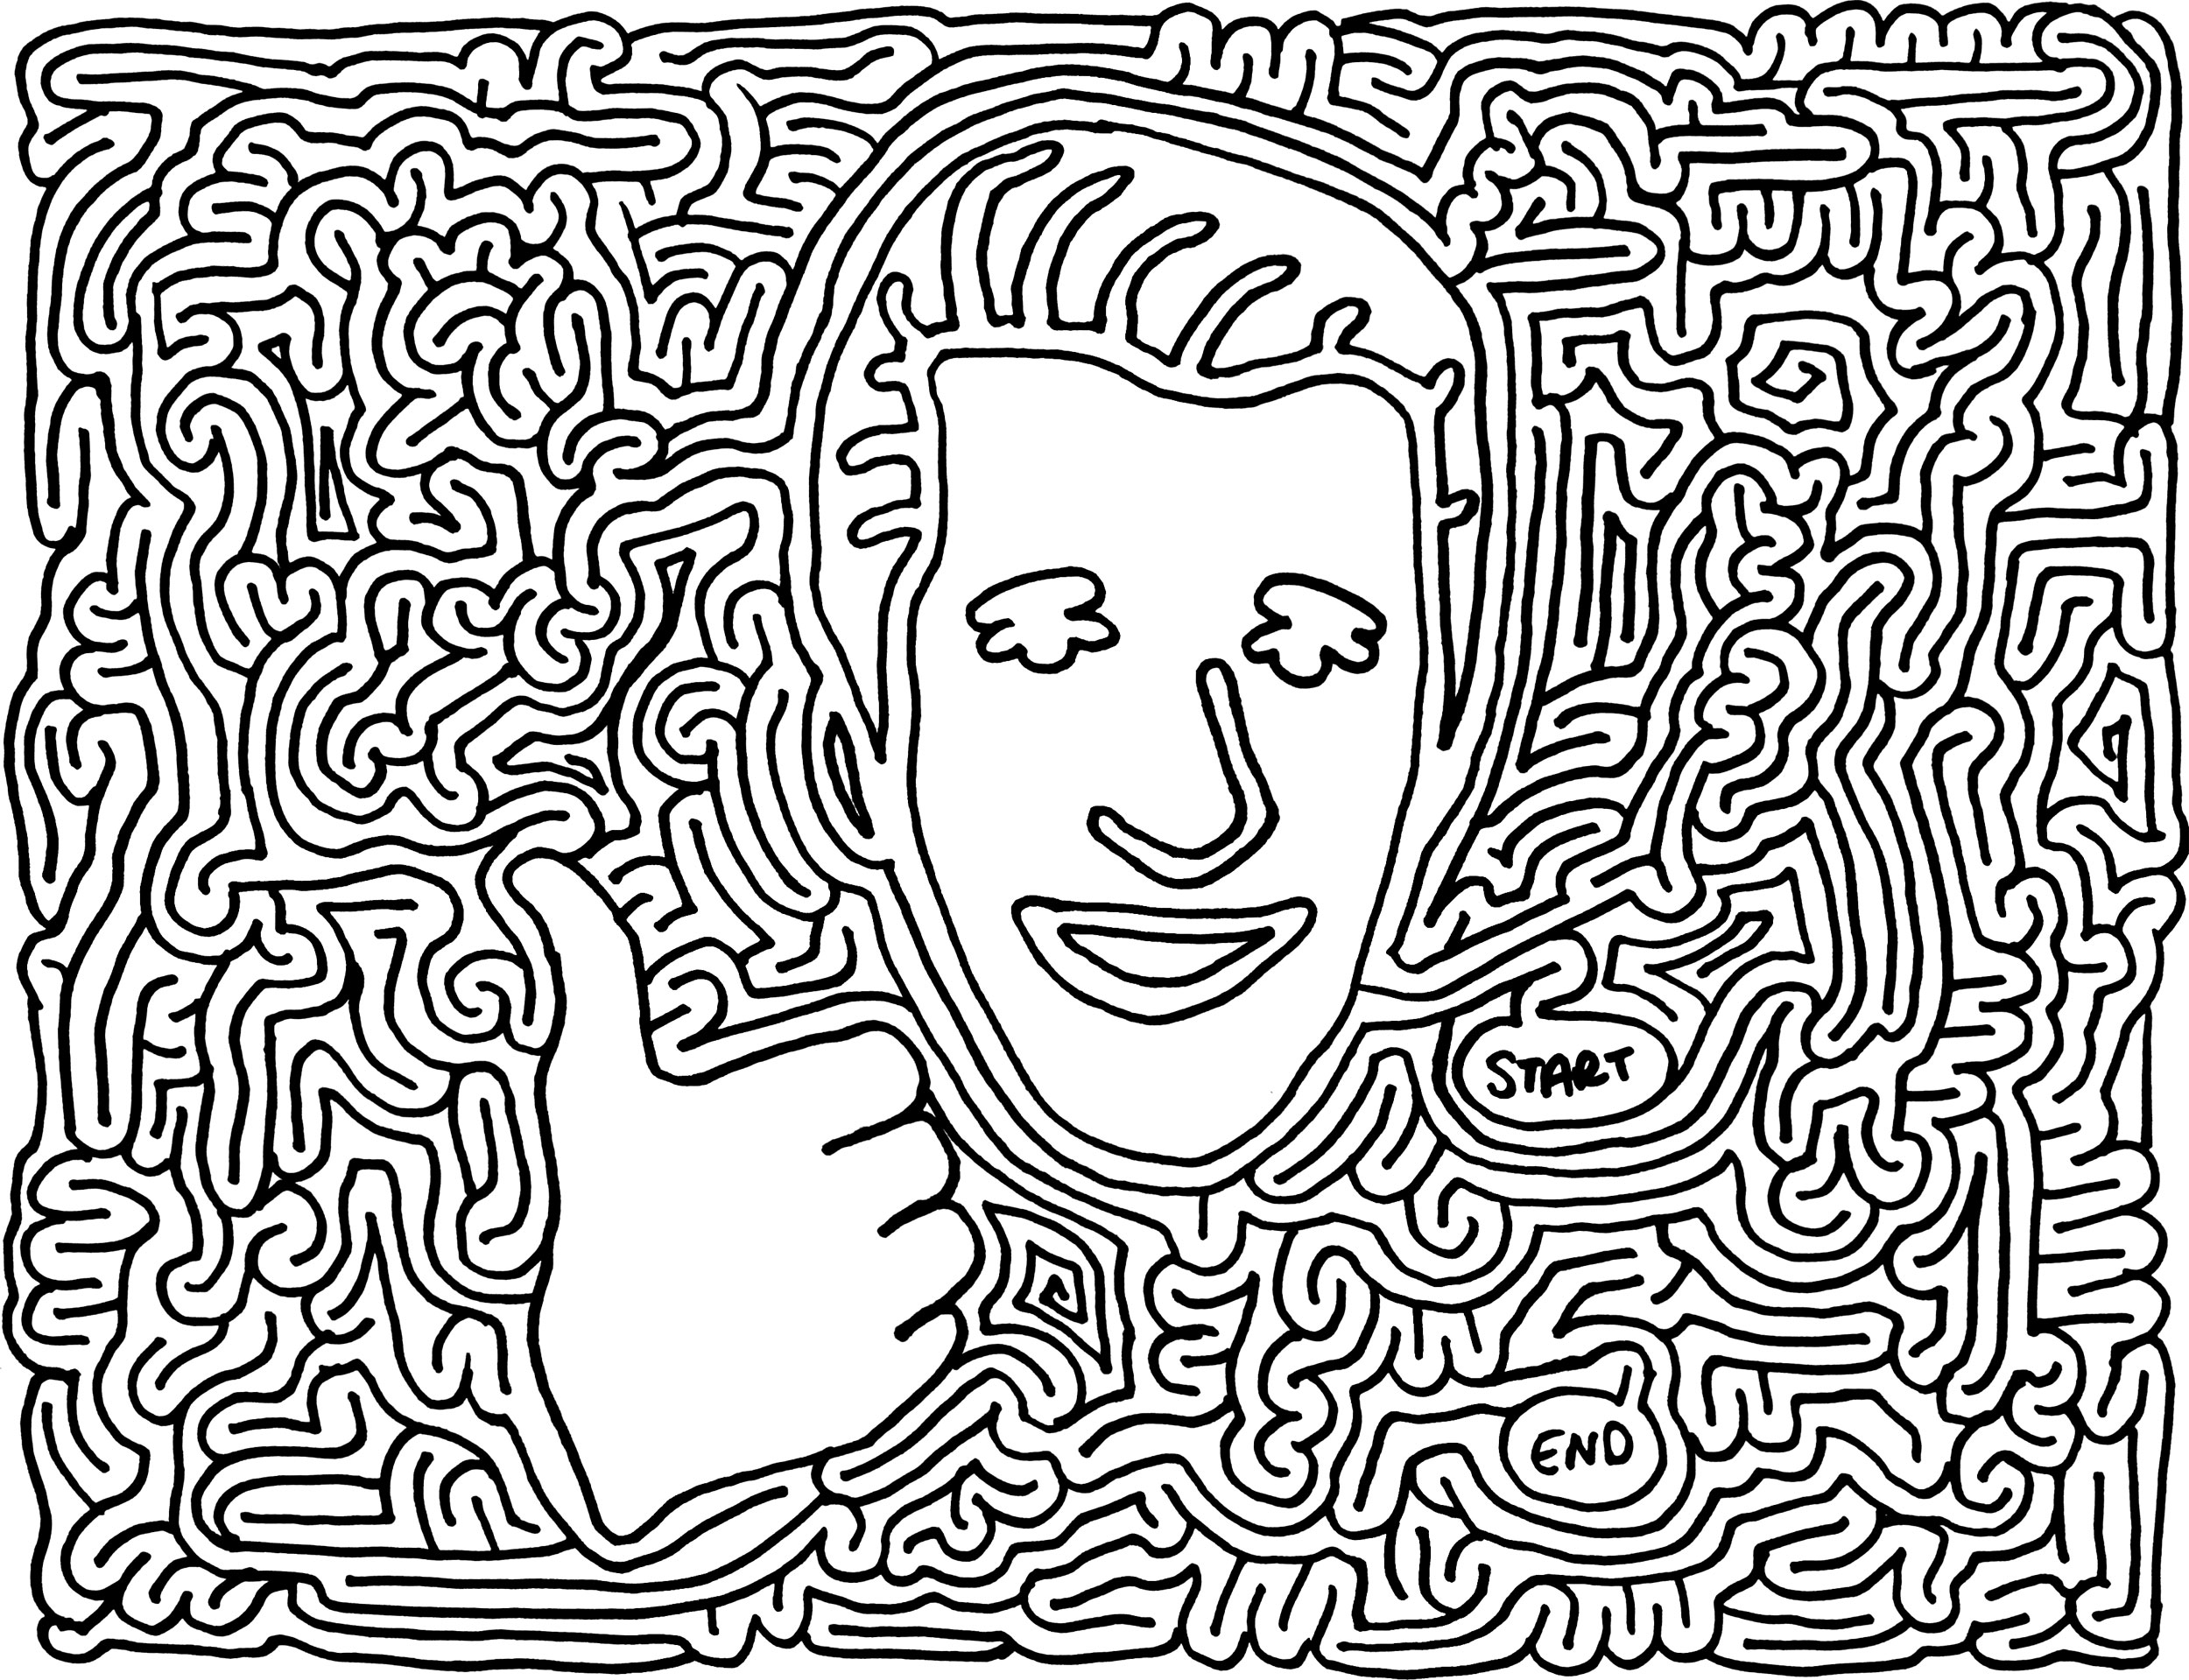 mazes » arrested development - by Eric J Eckert